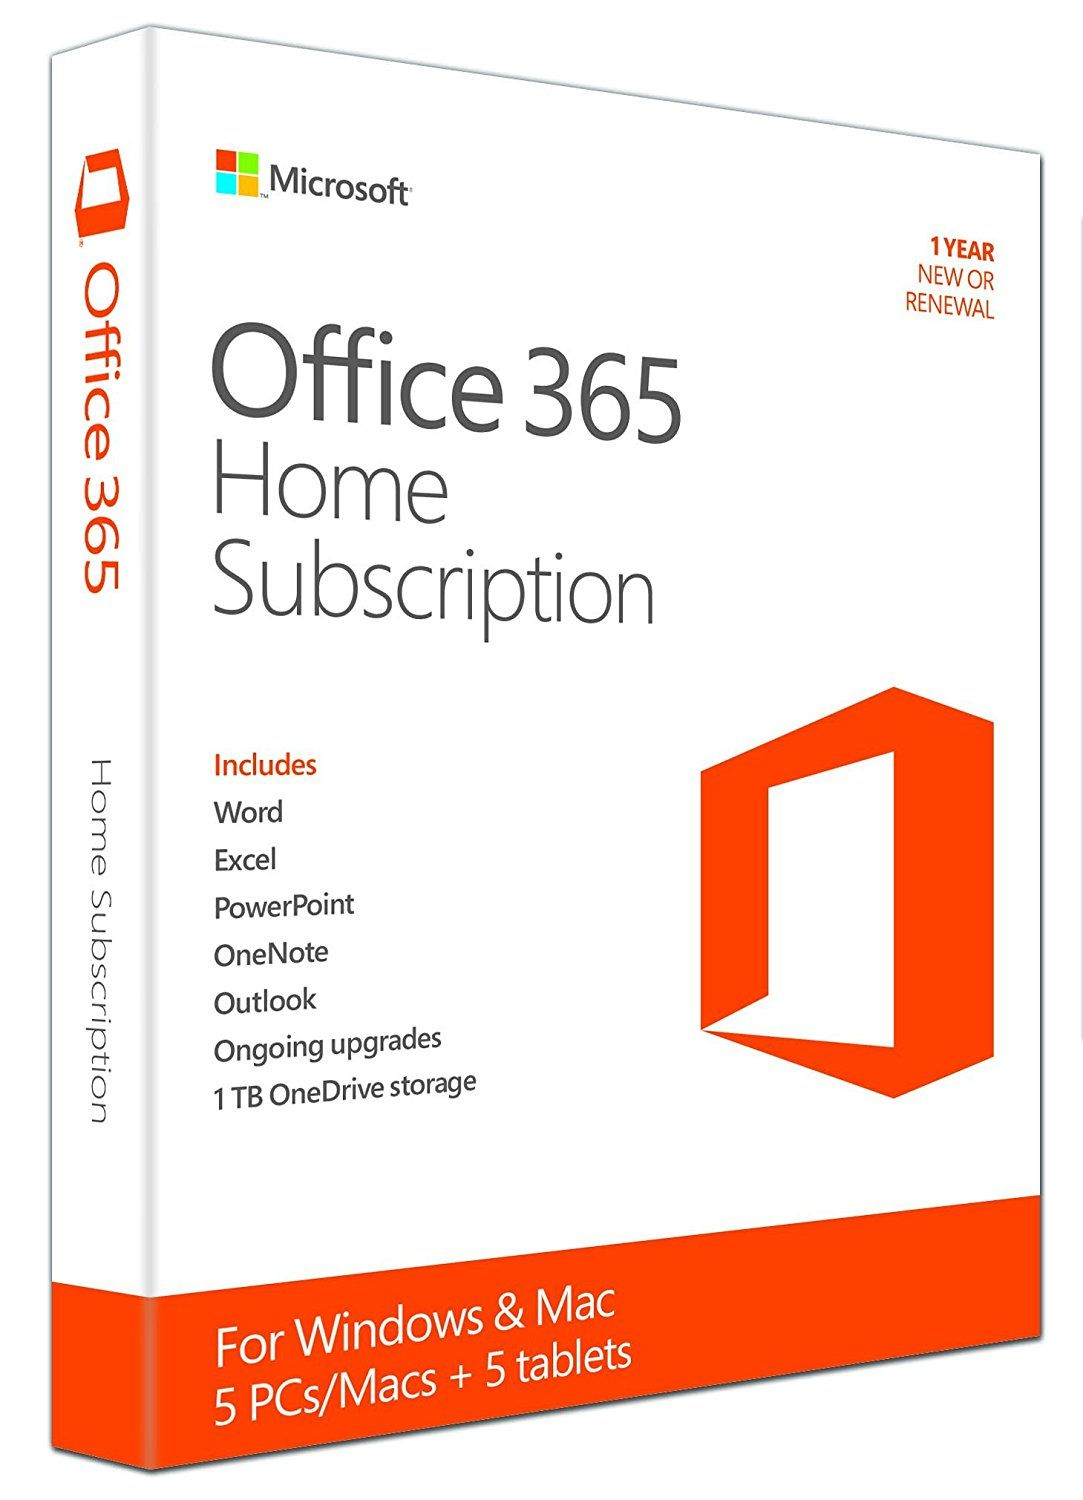 You can renew your office setup 365 subscription at office.com/renew ...